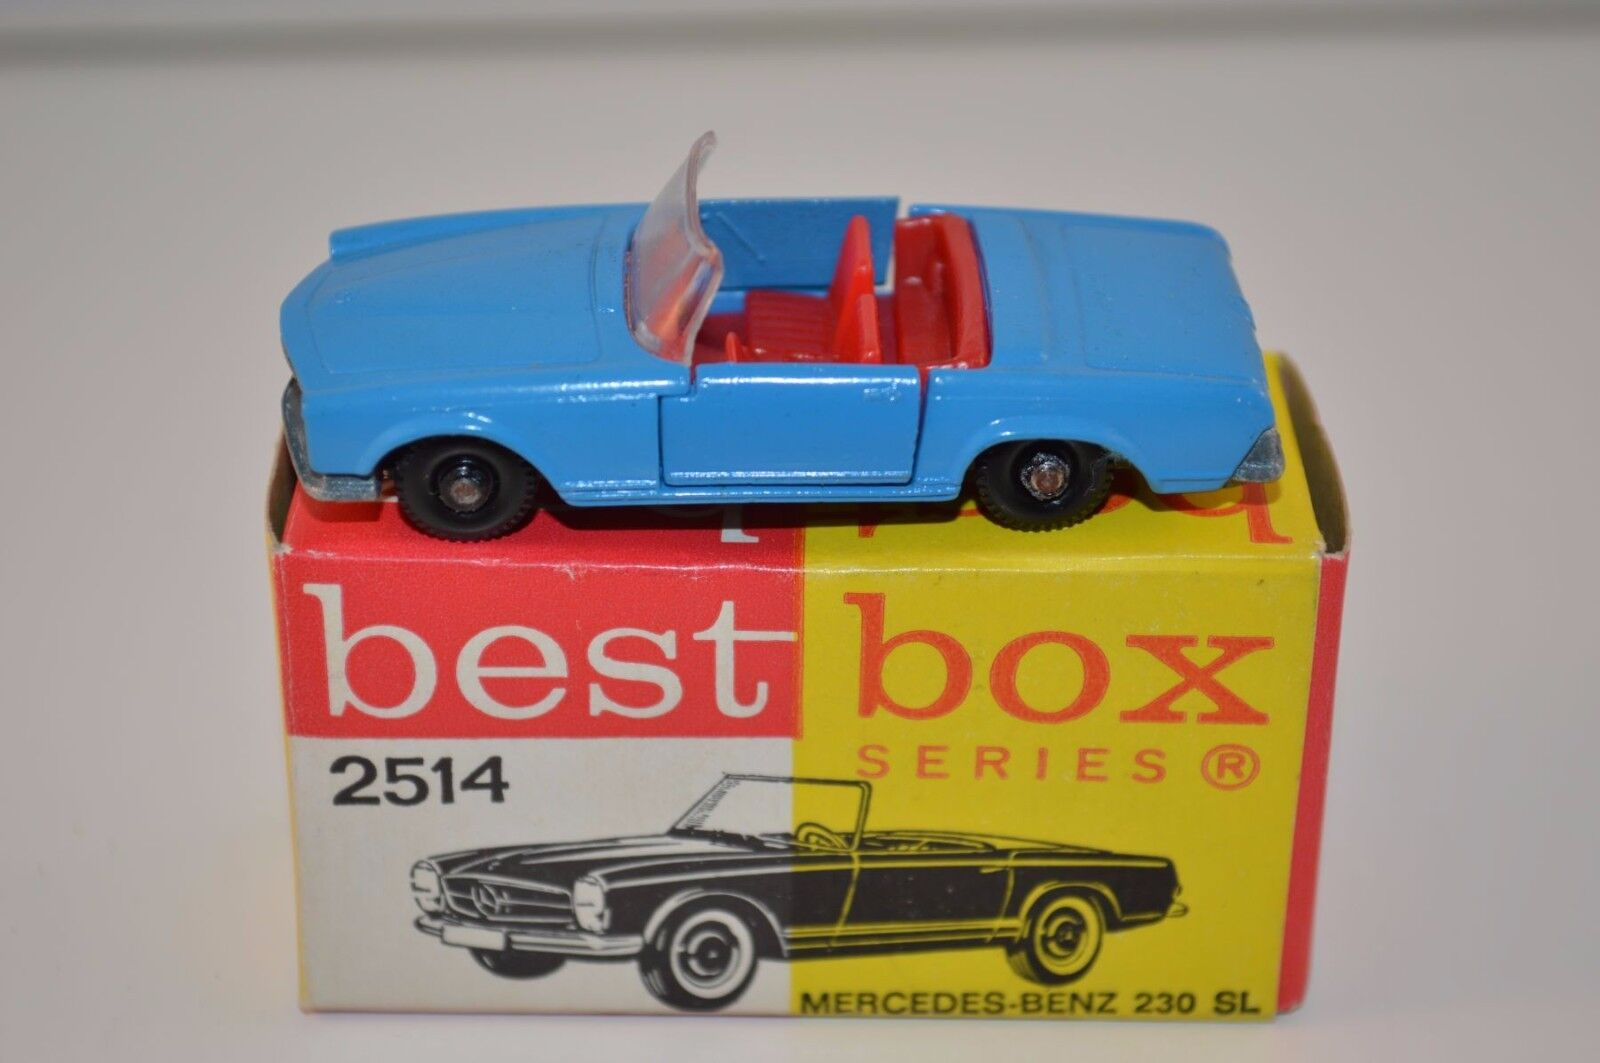 Bestbox Best Box 2514 Mercedes Benz 230 near mint in box very sCochece colour